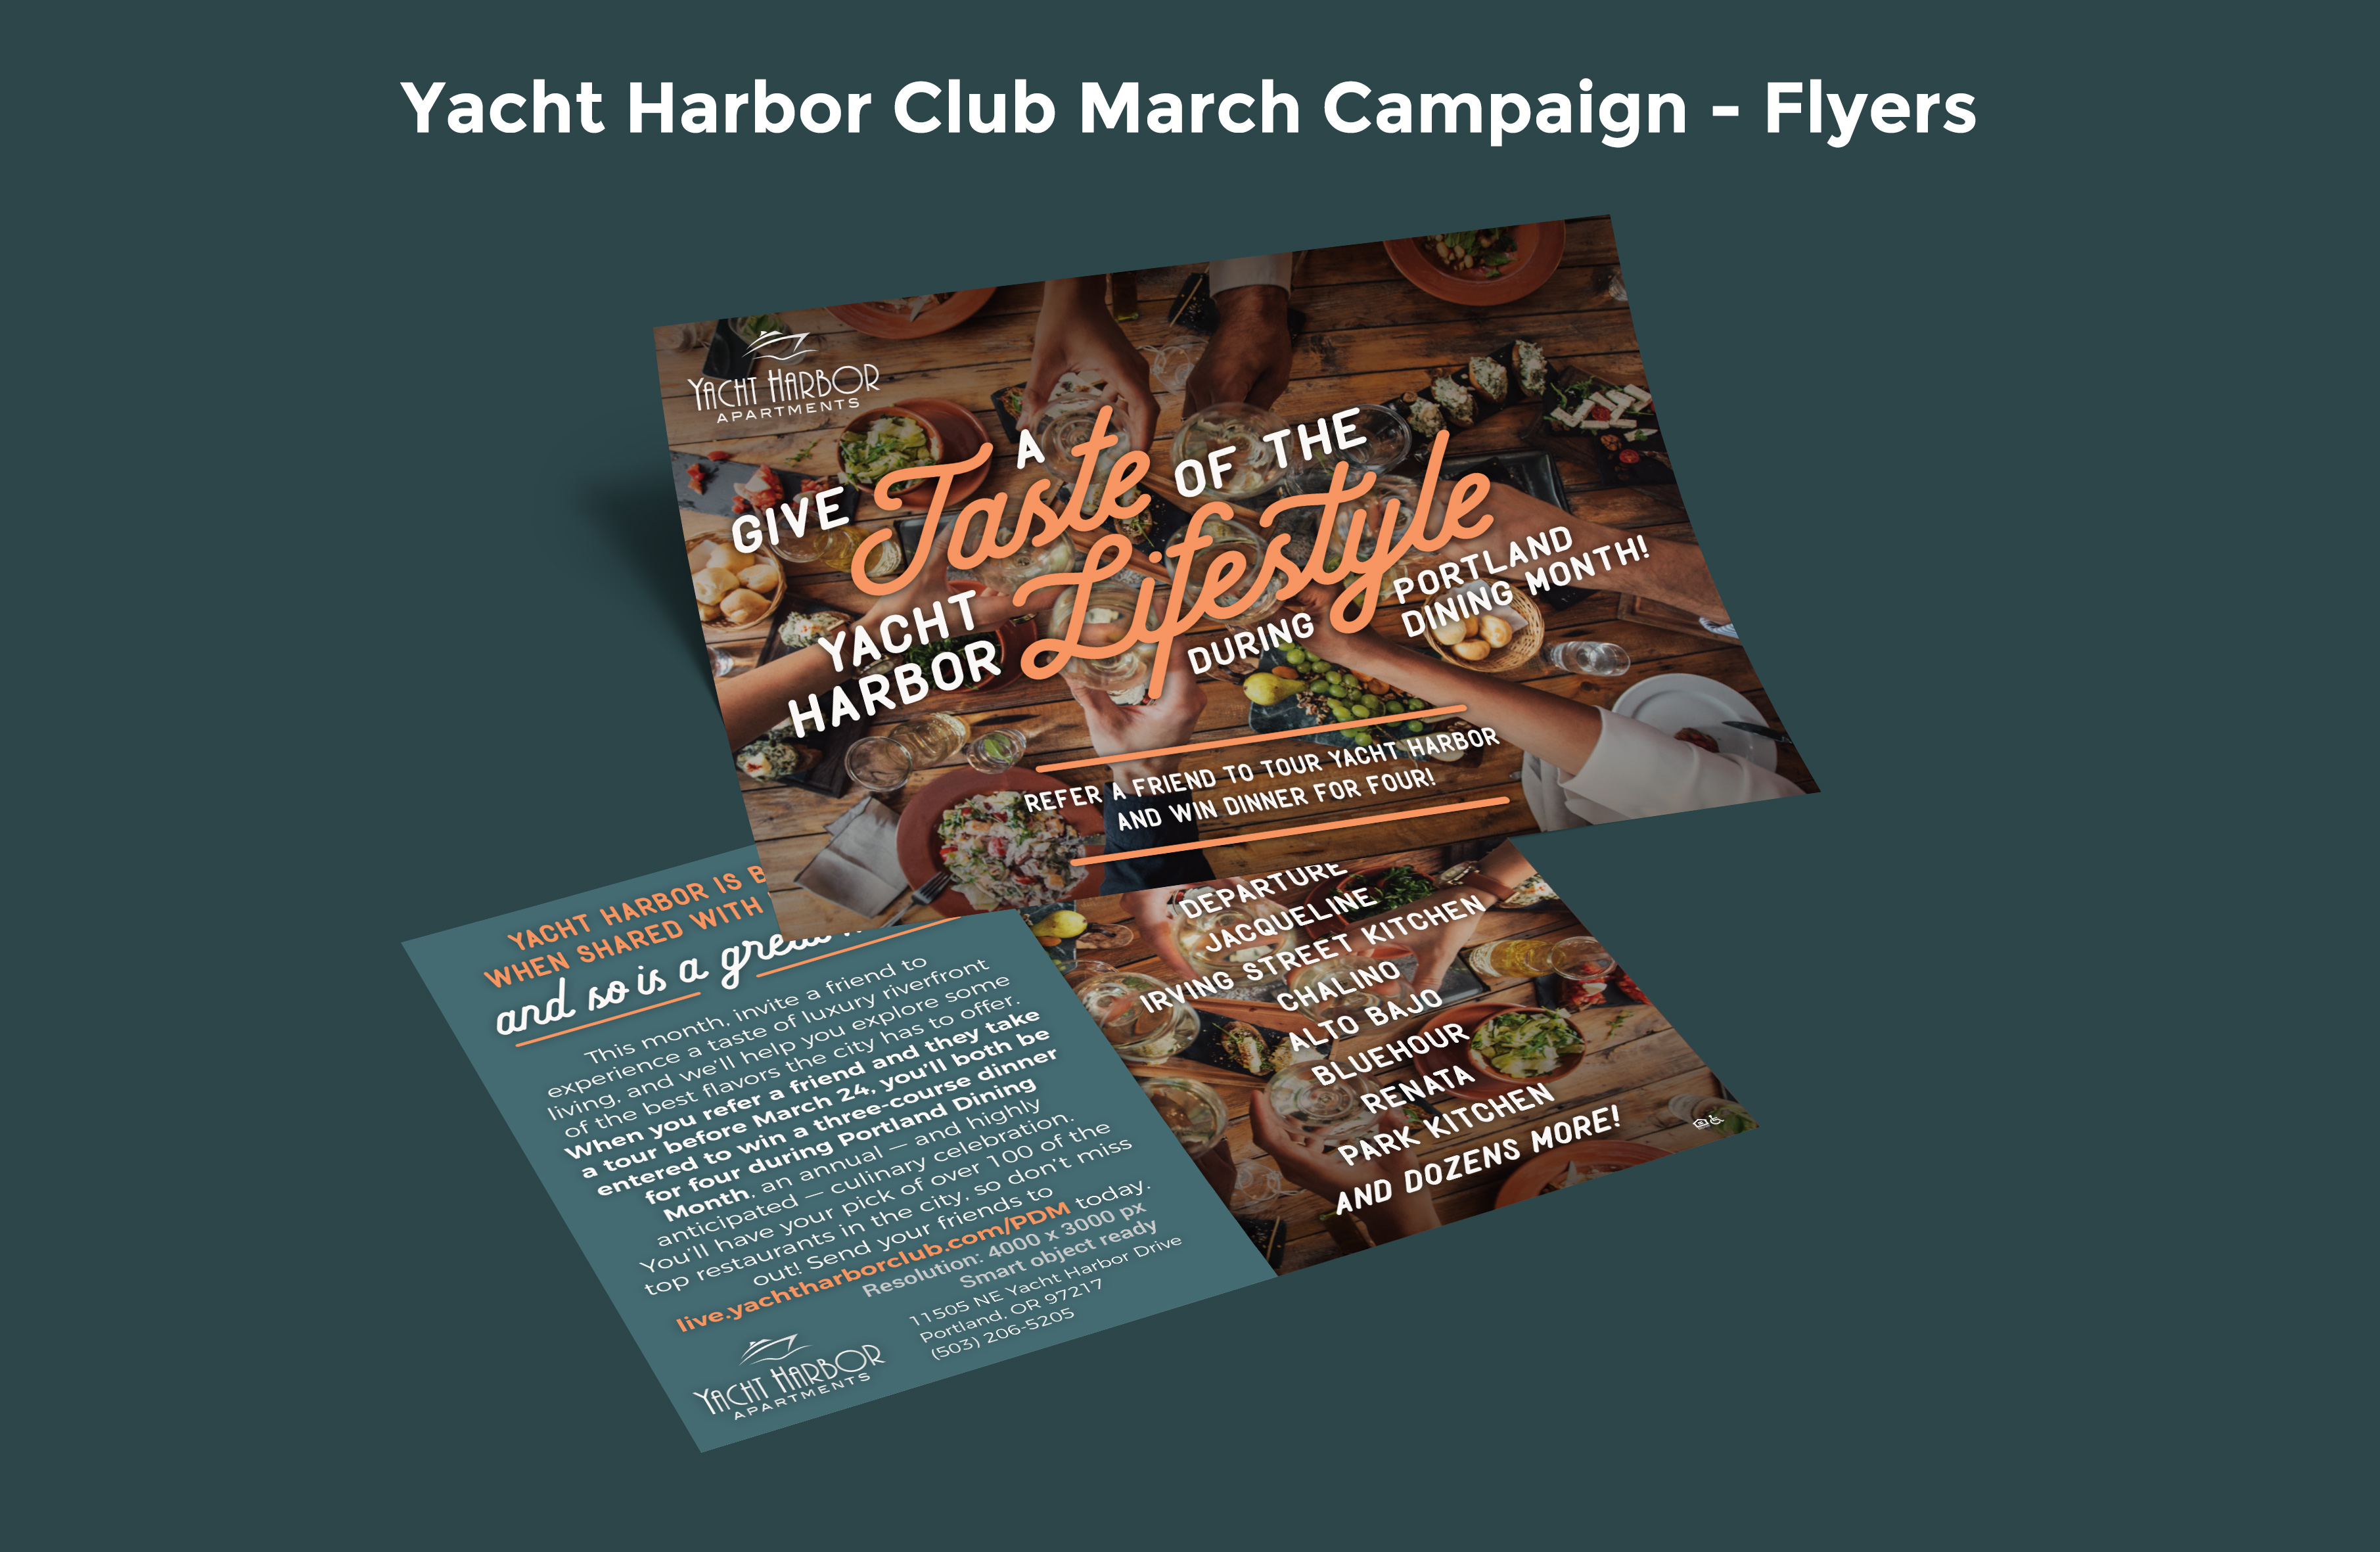 Yacht Harbor Club March Campaign Flyers